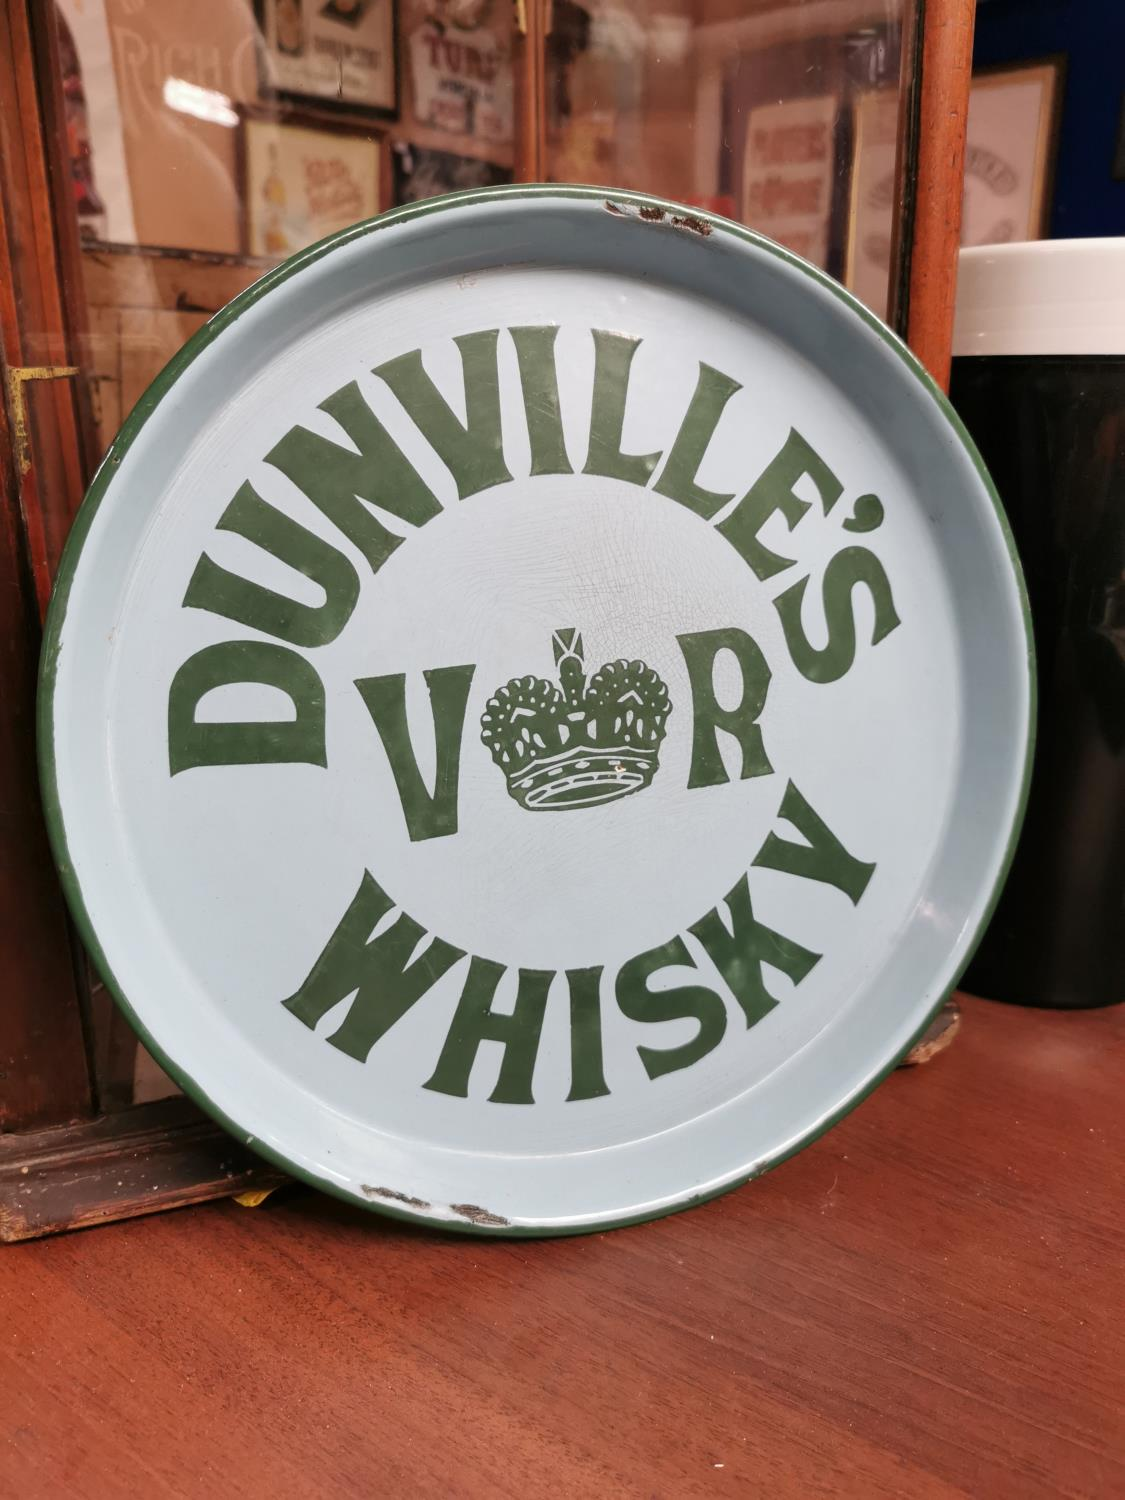 Dunville's VR Whiskey advertising tray.